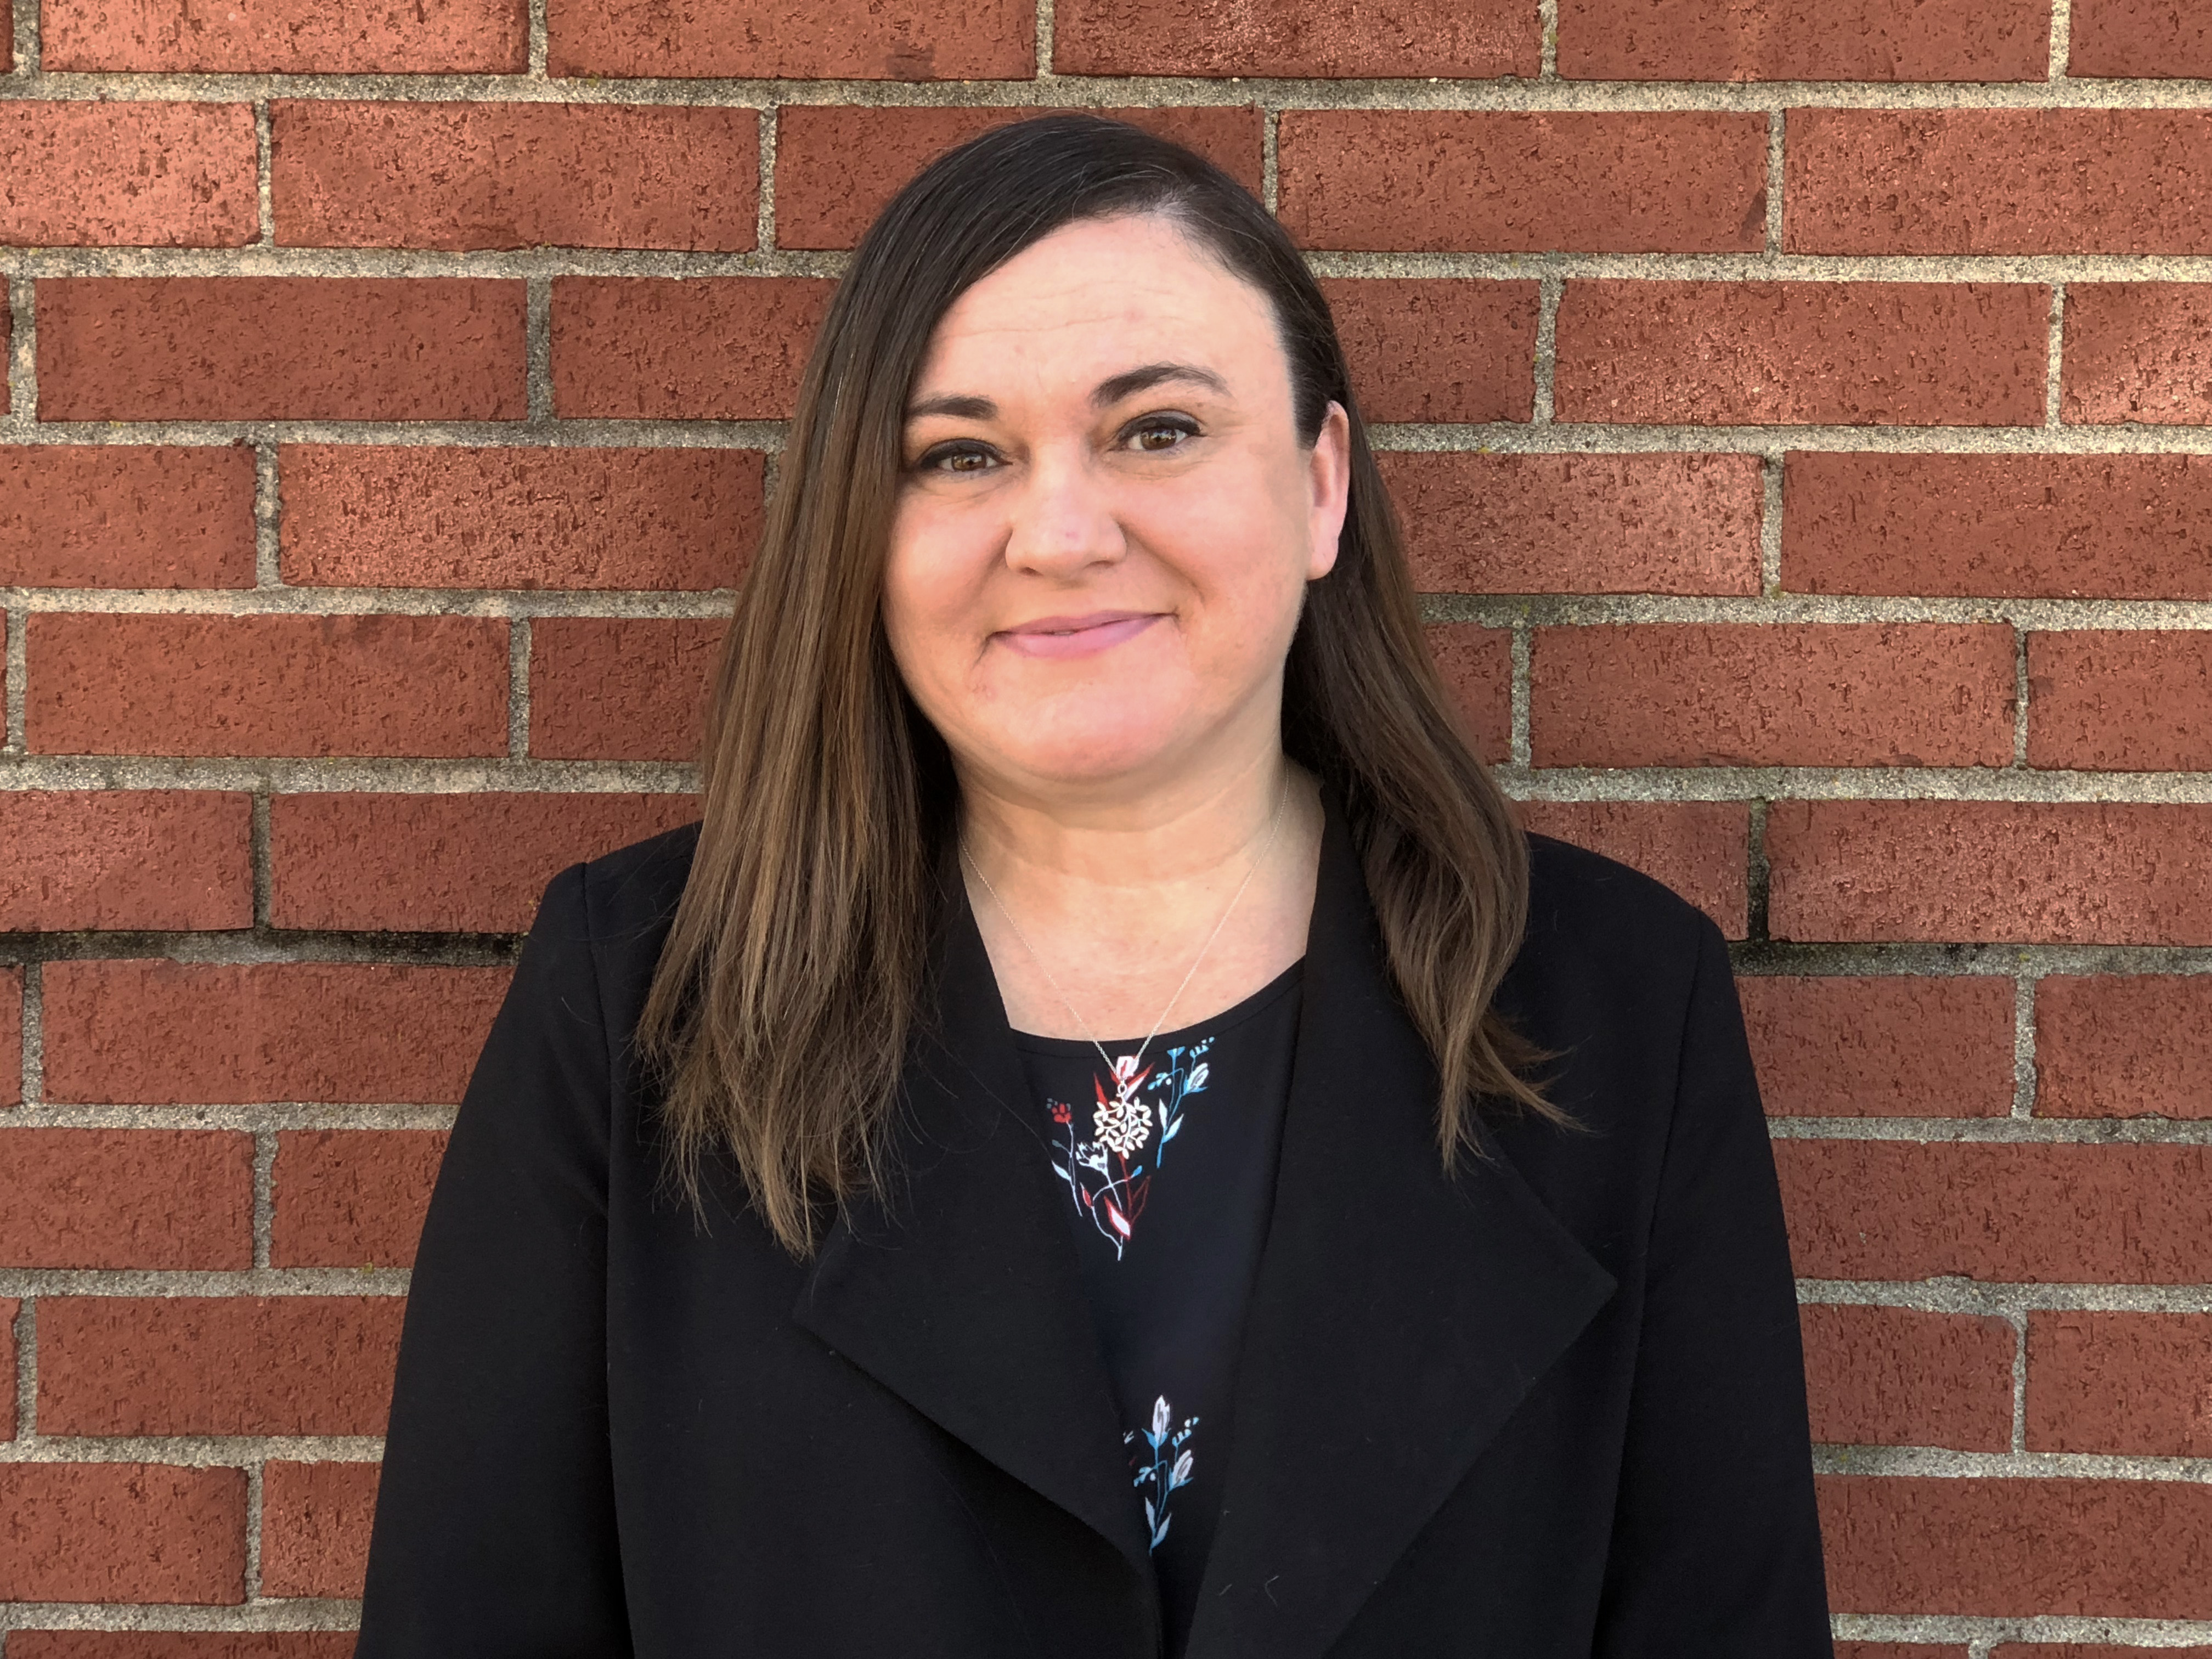 The Kitchen, Inc. Announces New Programs Director – The Kitchen, Inc.